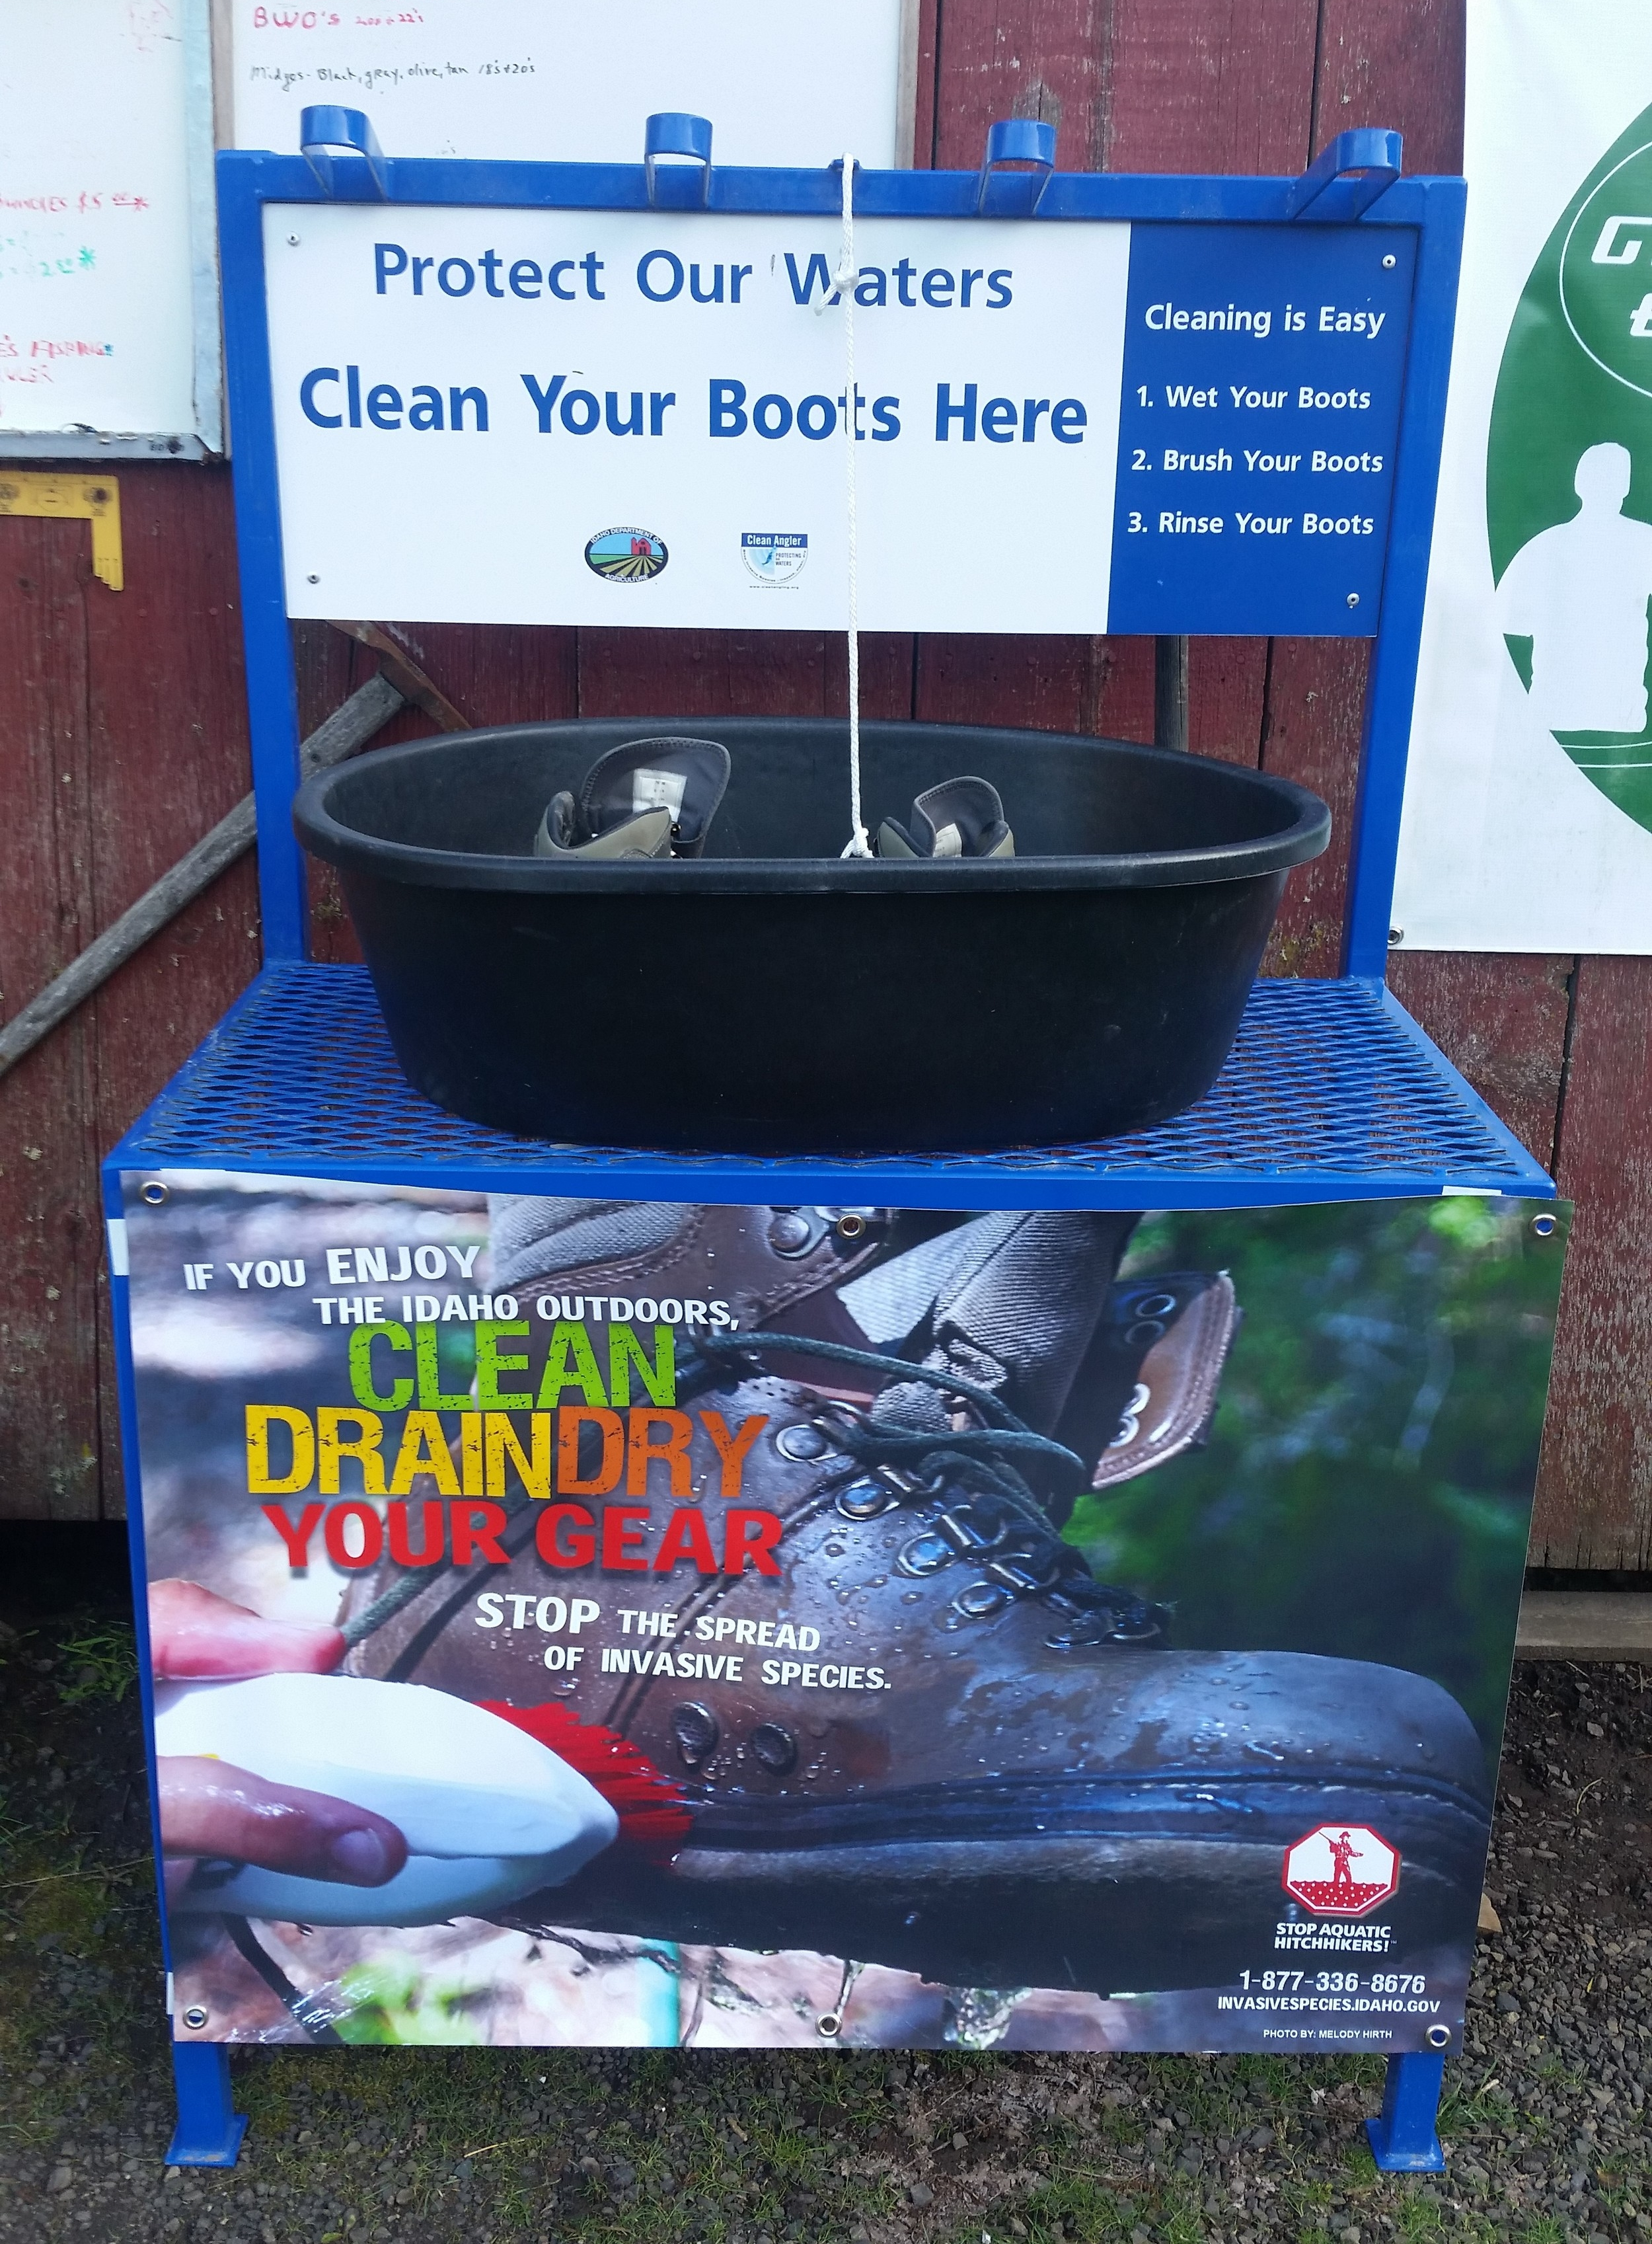 Boot wash stations are showing up at various business locations throughout Idaho and NW Region to assist in the cleaning of wading gear.